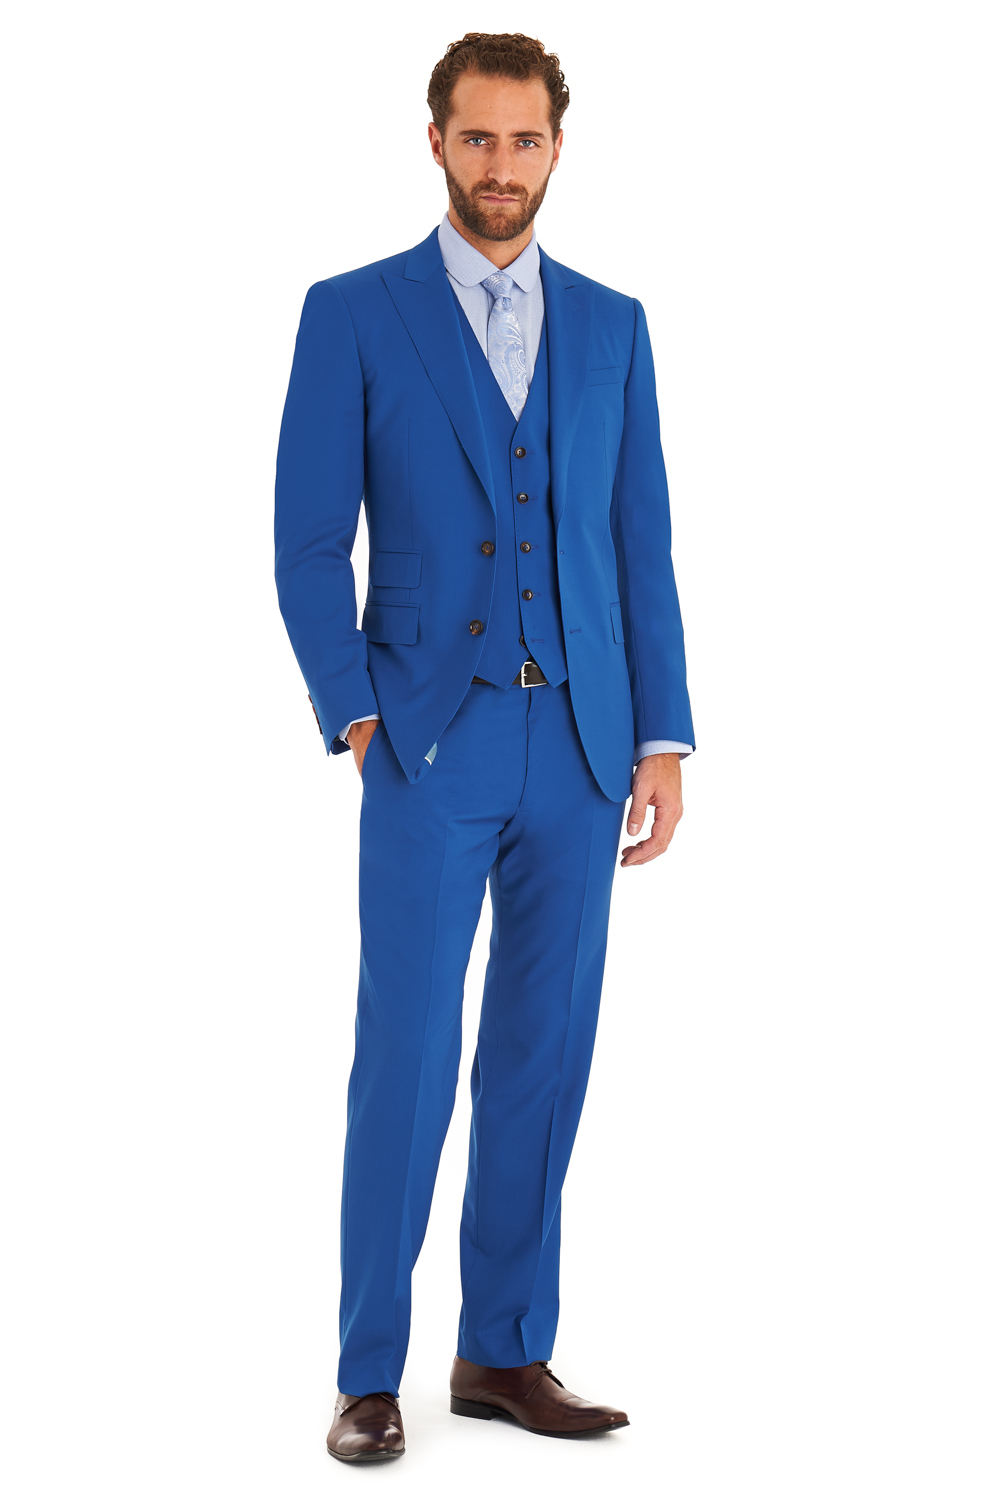 Mens Blue Suit Sale | My Dress Tip